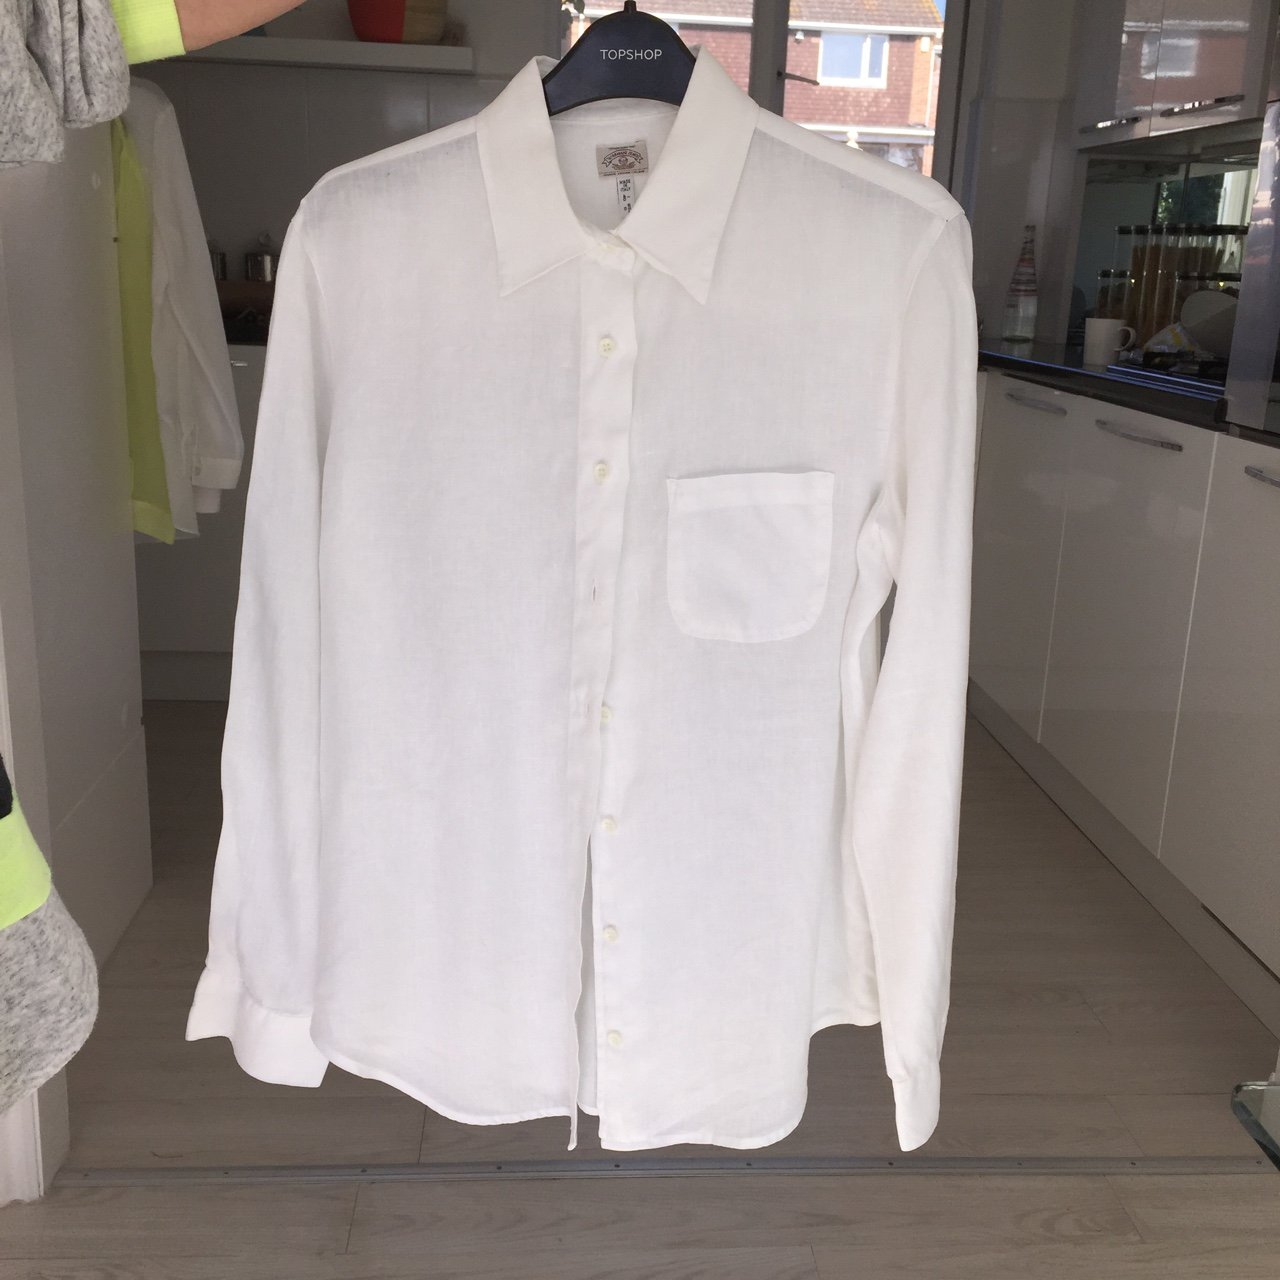 Out Linen Works A Jeans Armani 12 In About Depop Shirt Which 40 Hn8c5qW